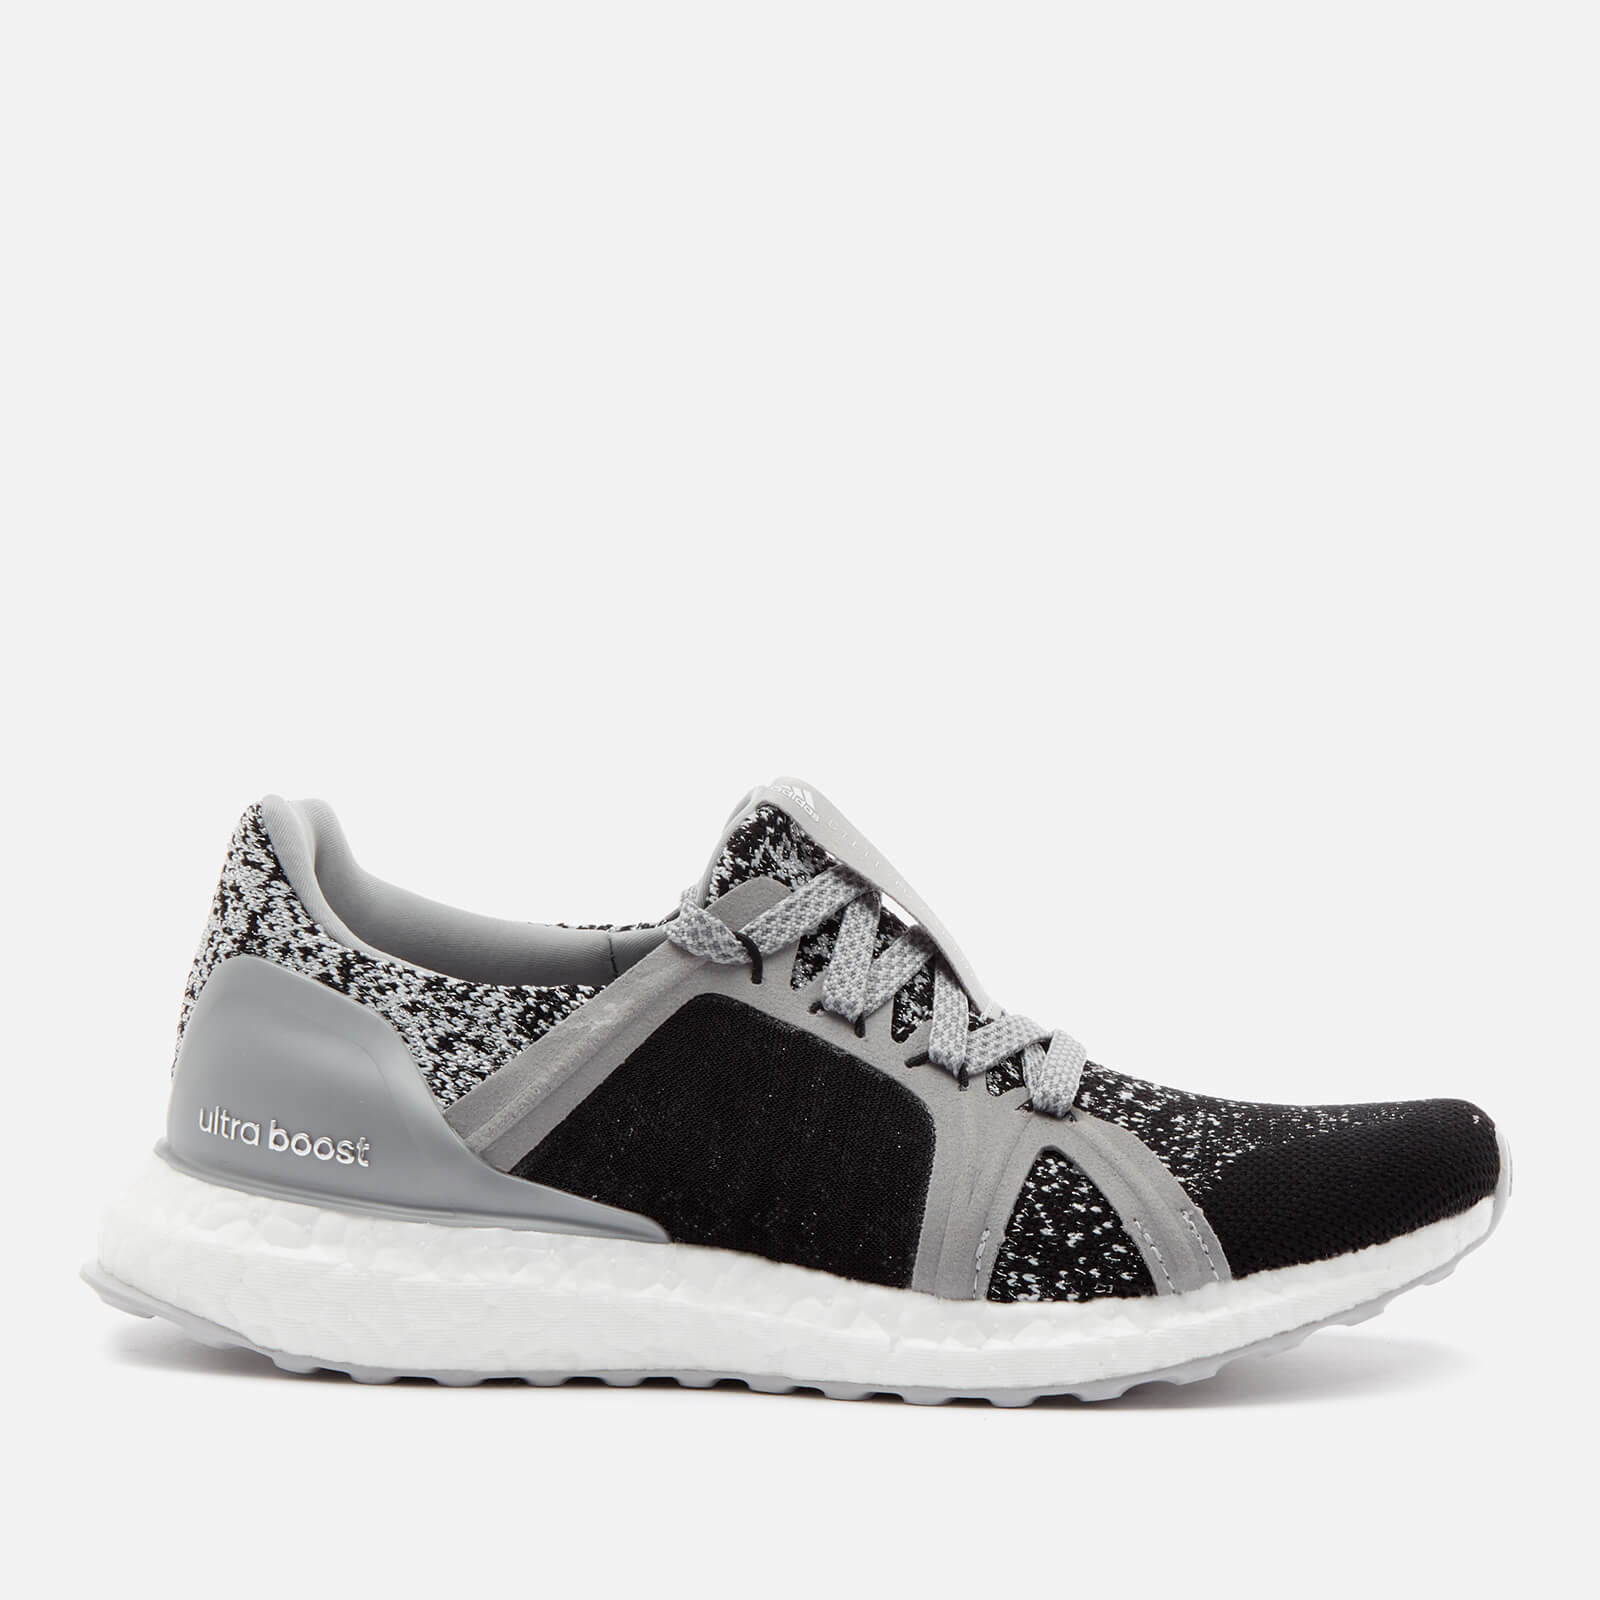 2adb47afa7d35 adidas by Stella McCartney Women s Ultraboost X Trainers - Silver  Metallic Solid Grey Core Black - Free UK Delivery over £50